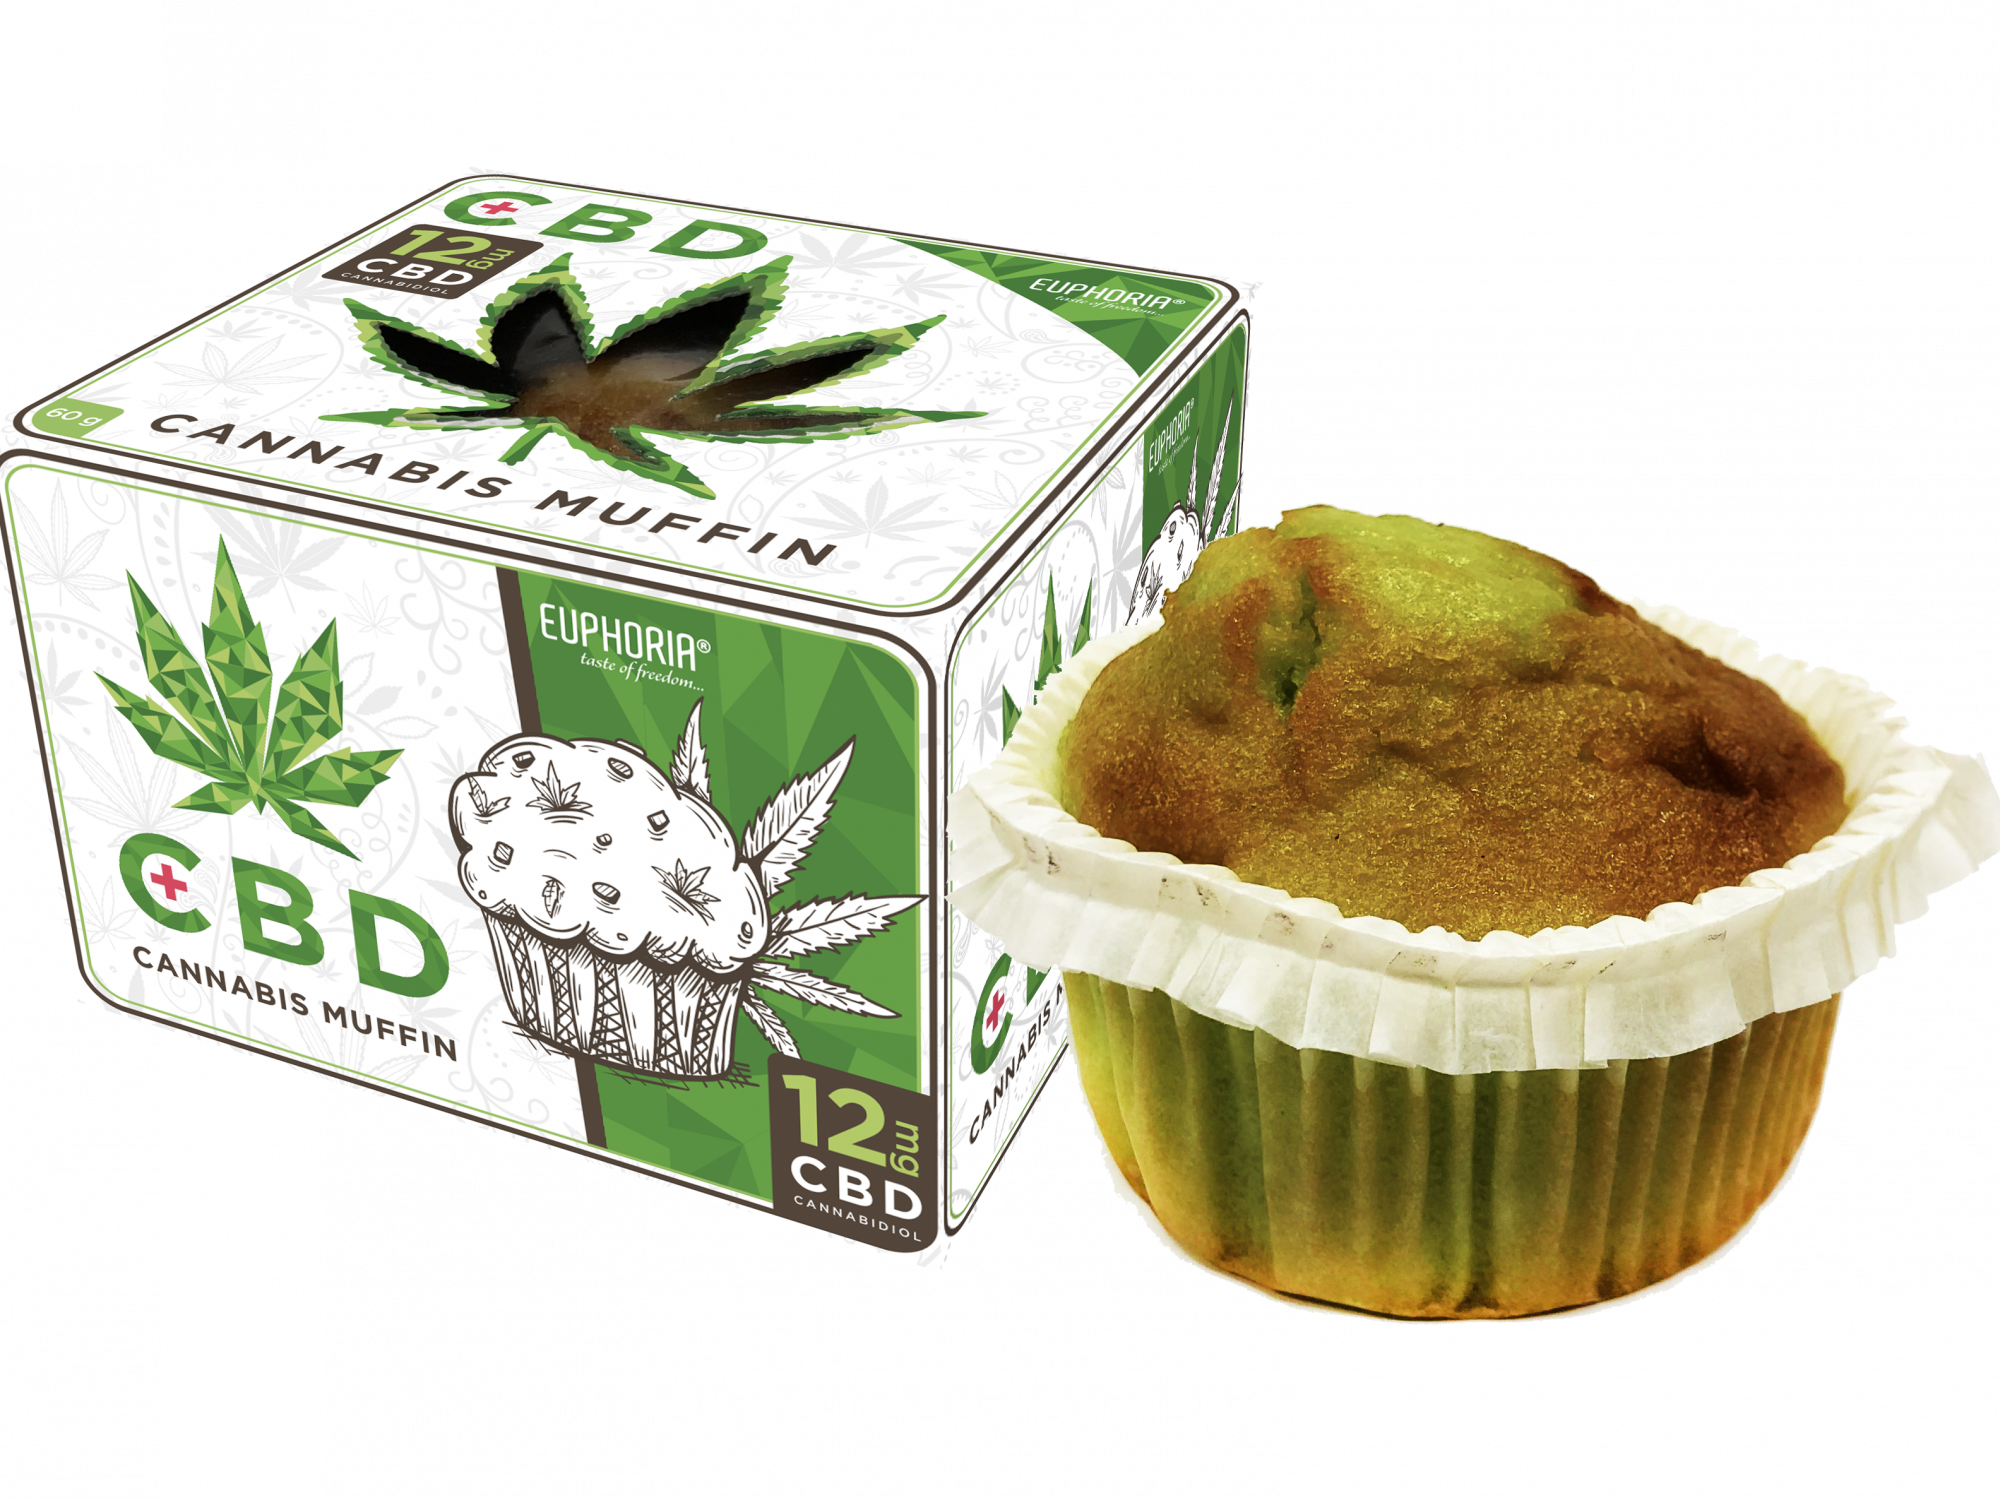 CBD Cannabis muffin with 12 mg